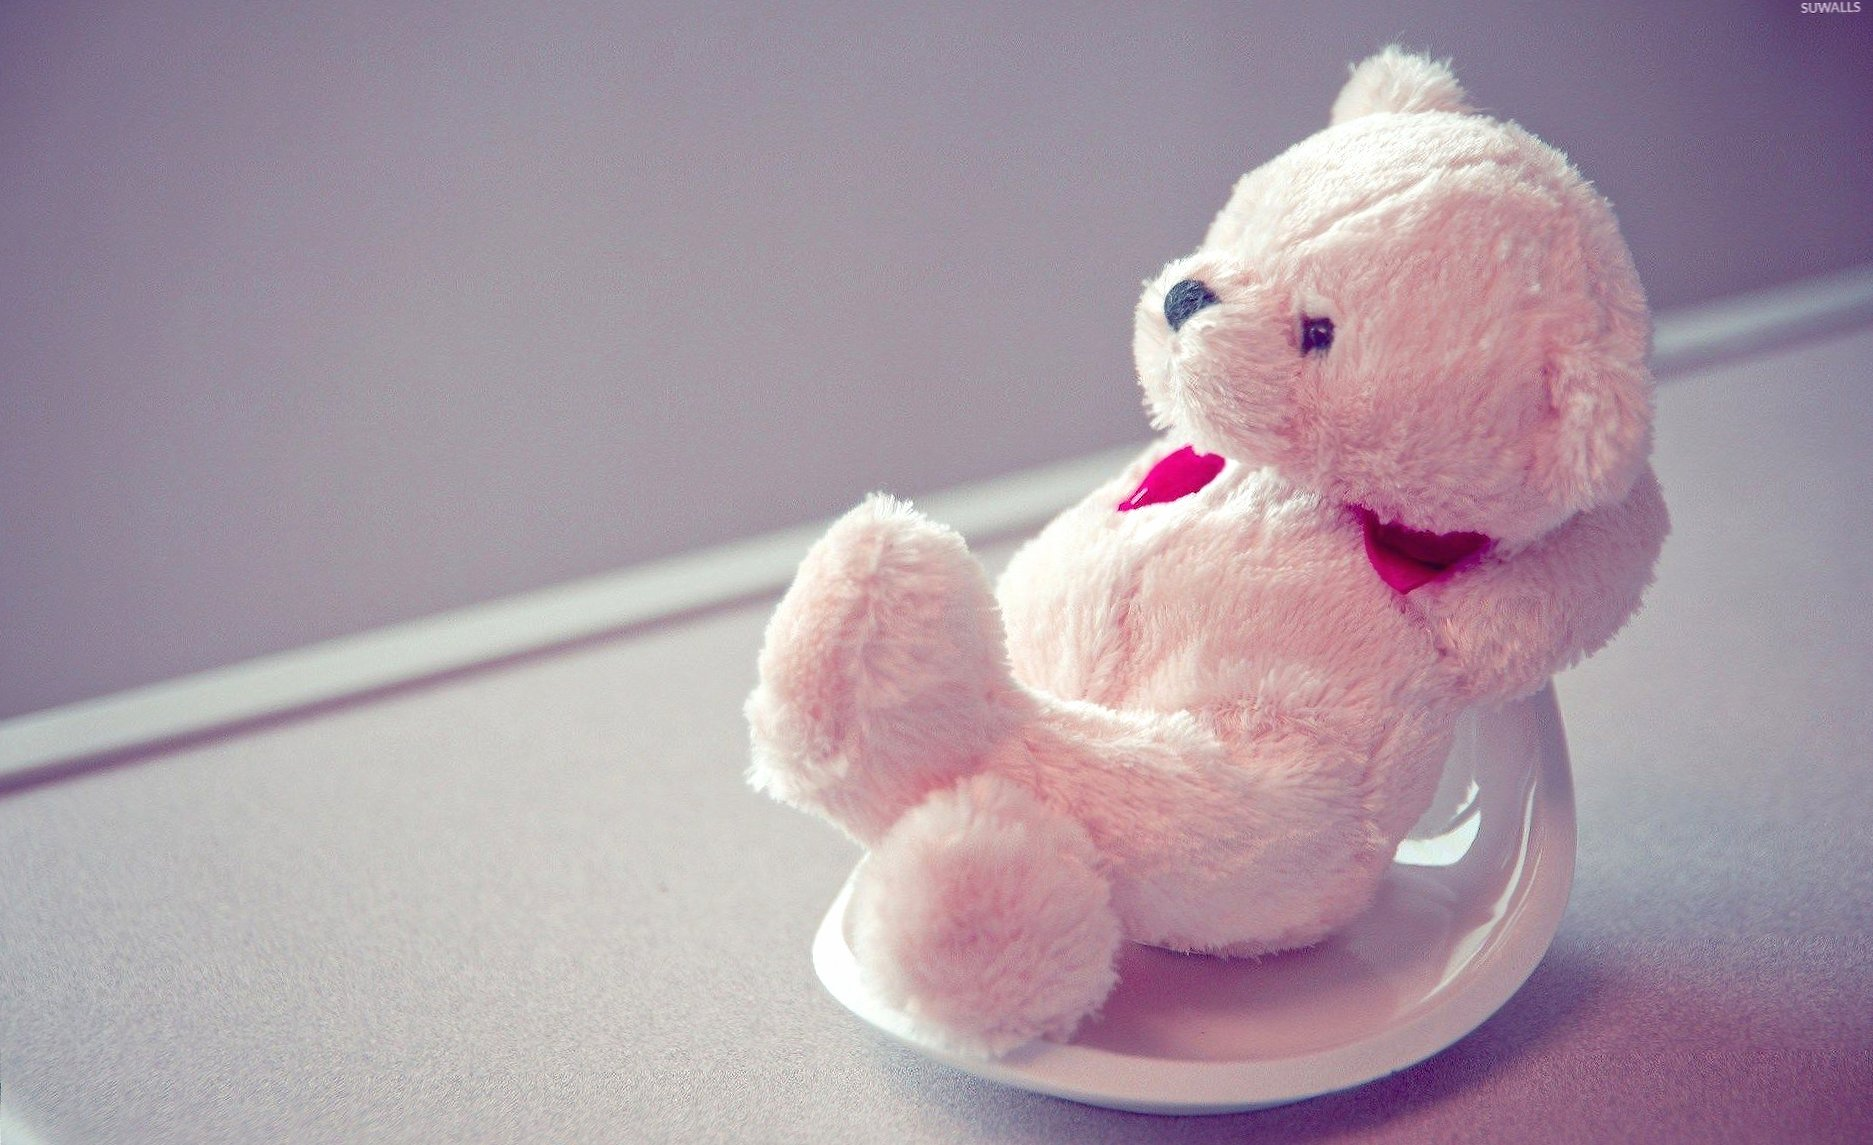 Fluffy teddy bear relaxing wallpapers HD quality